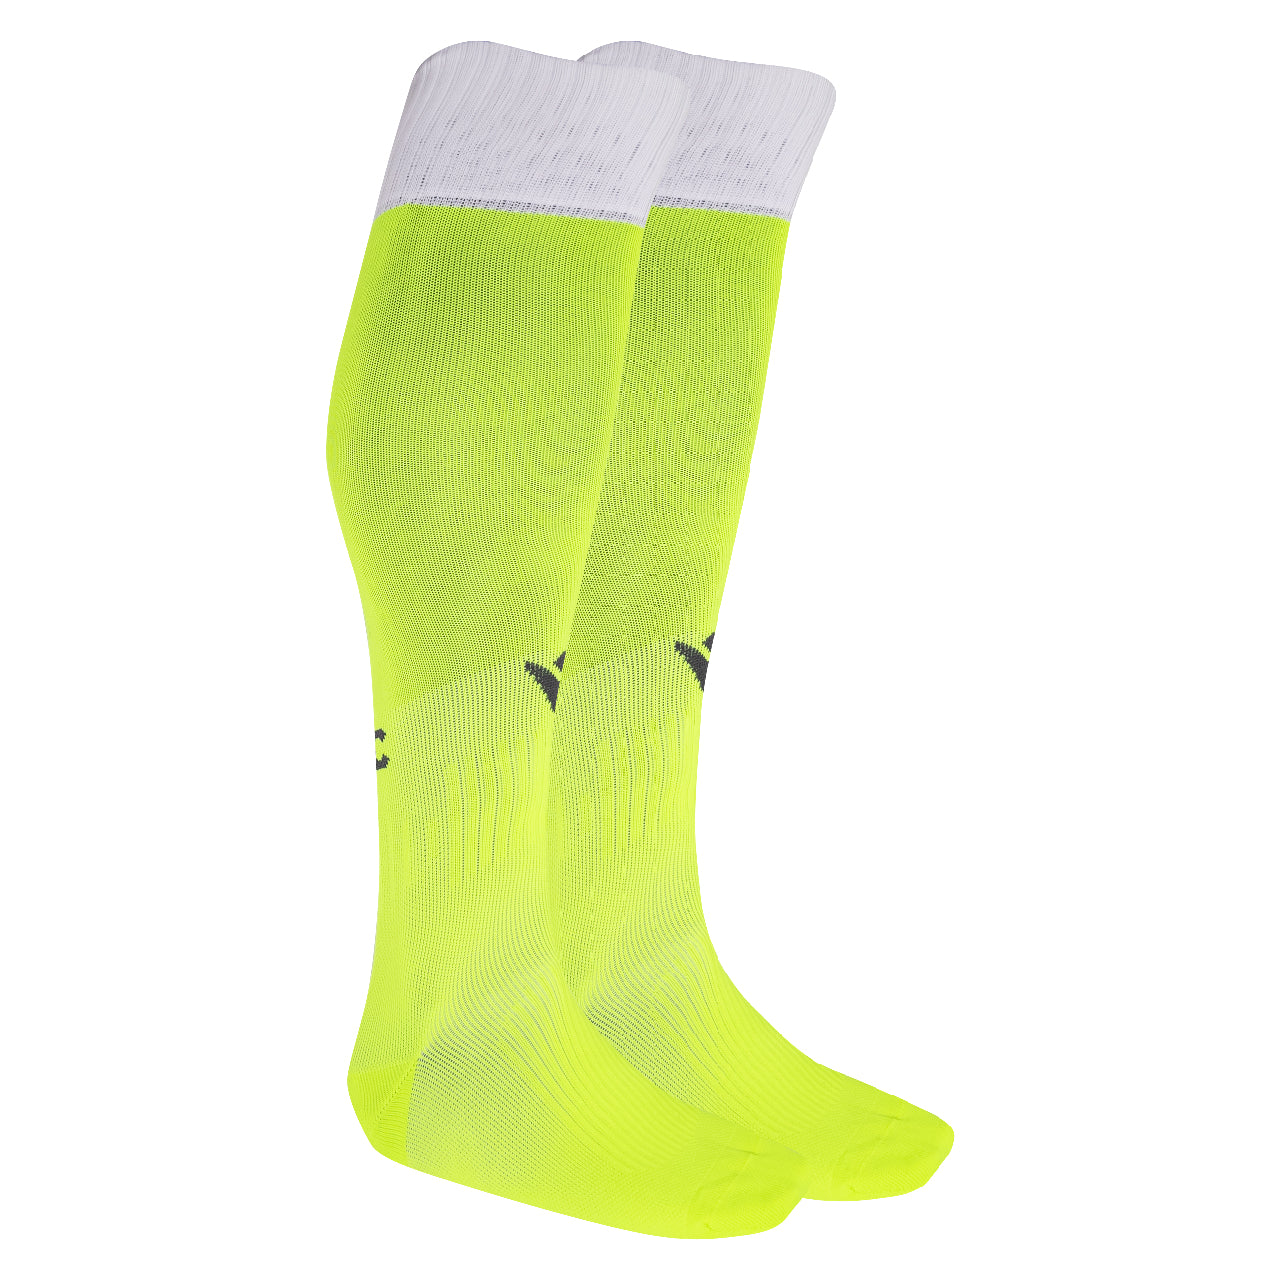 NFFC Junior Yellow Goalkeeper Socks 2019/20